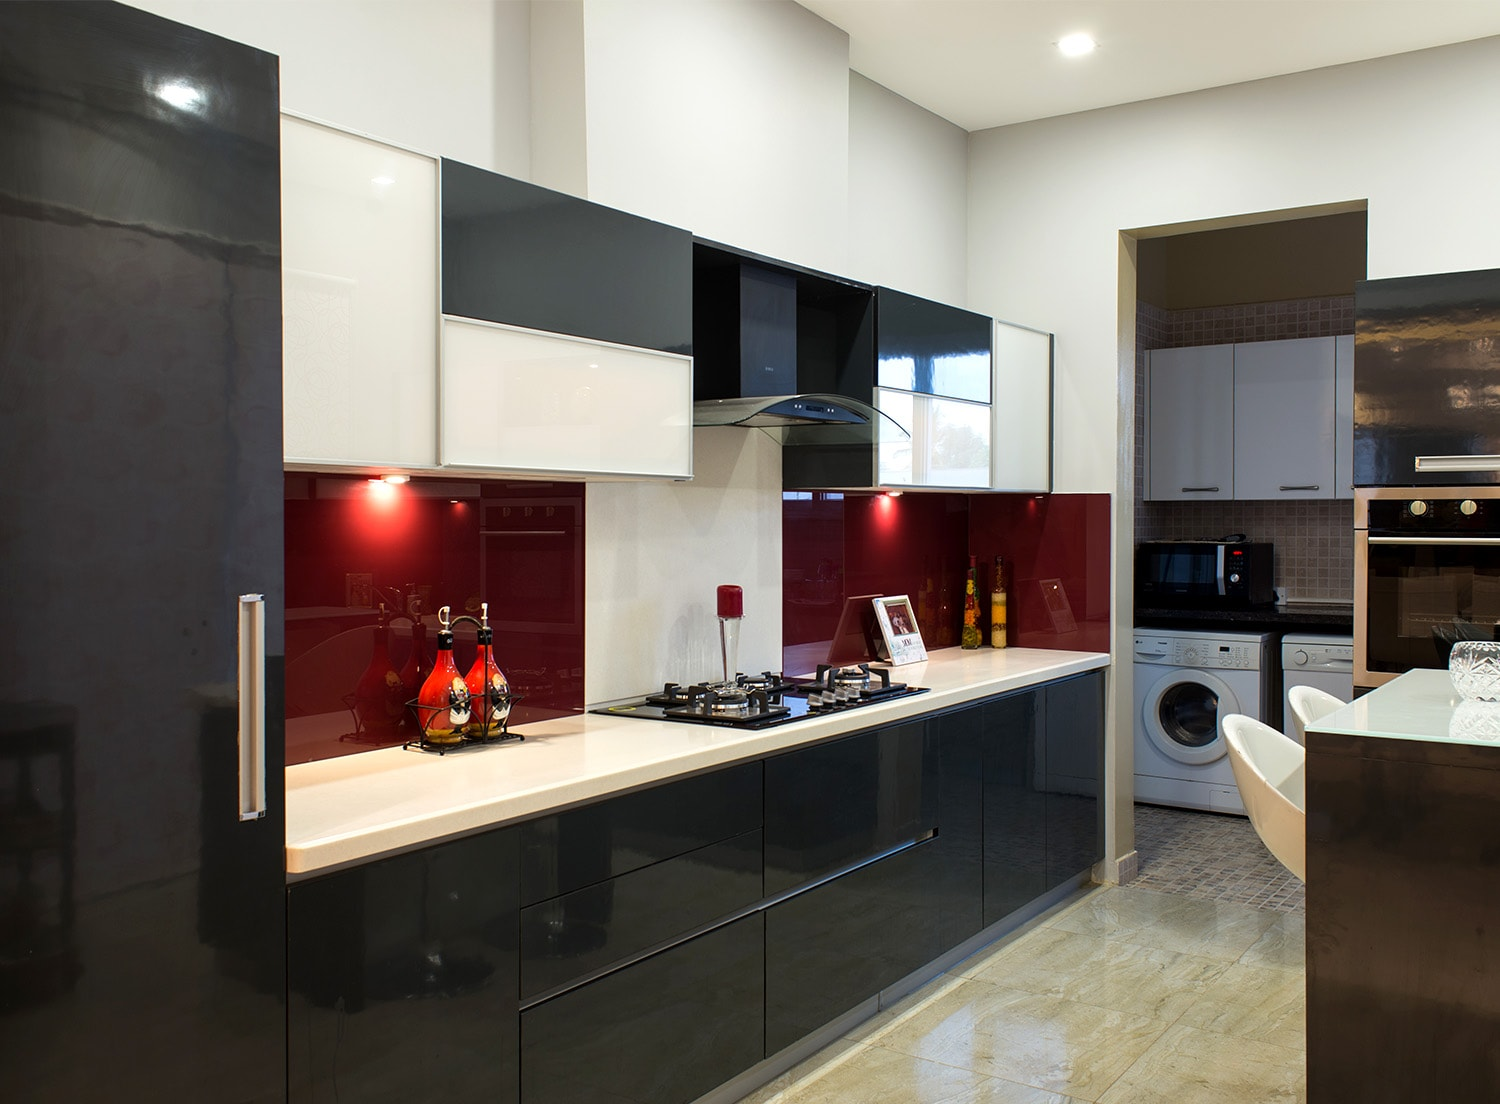 Modular Kitchen Interiors Home Interiors By Homelane Modular Kitchens Wardrobes Storage